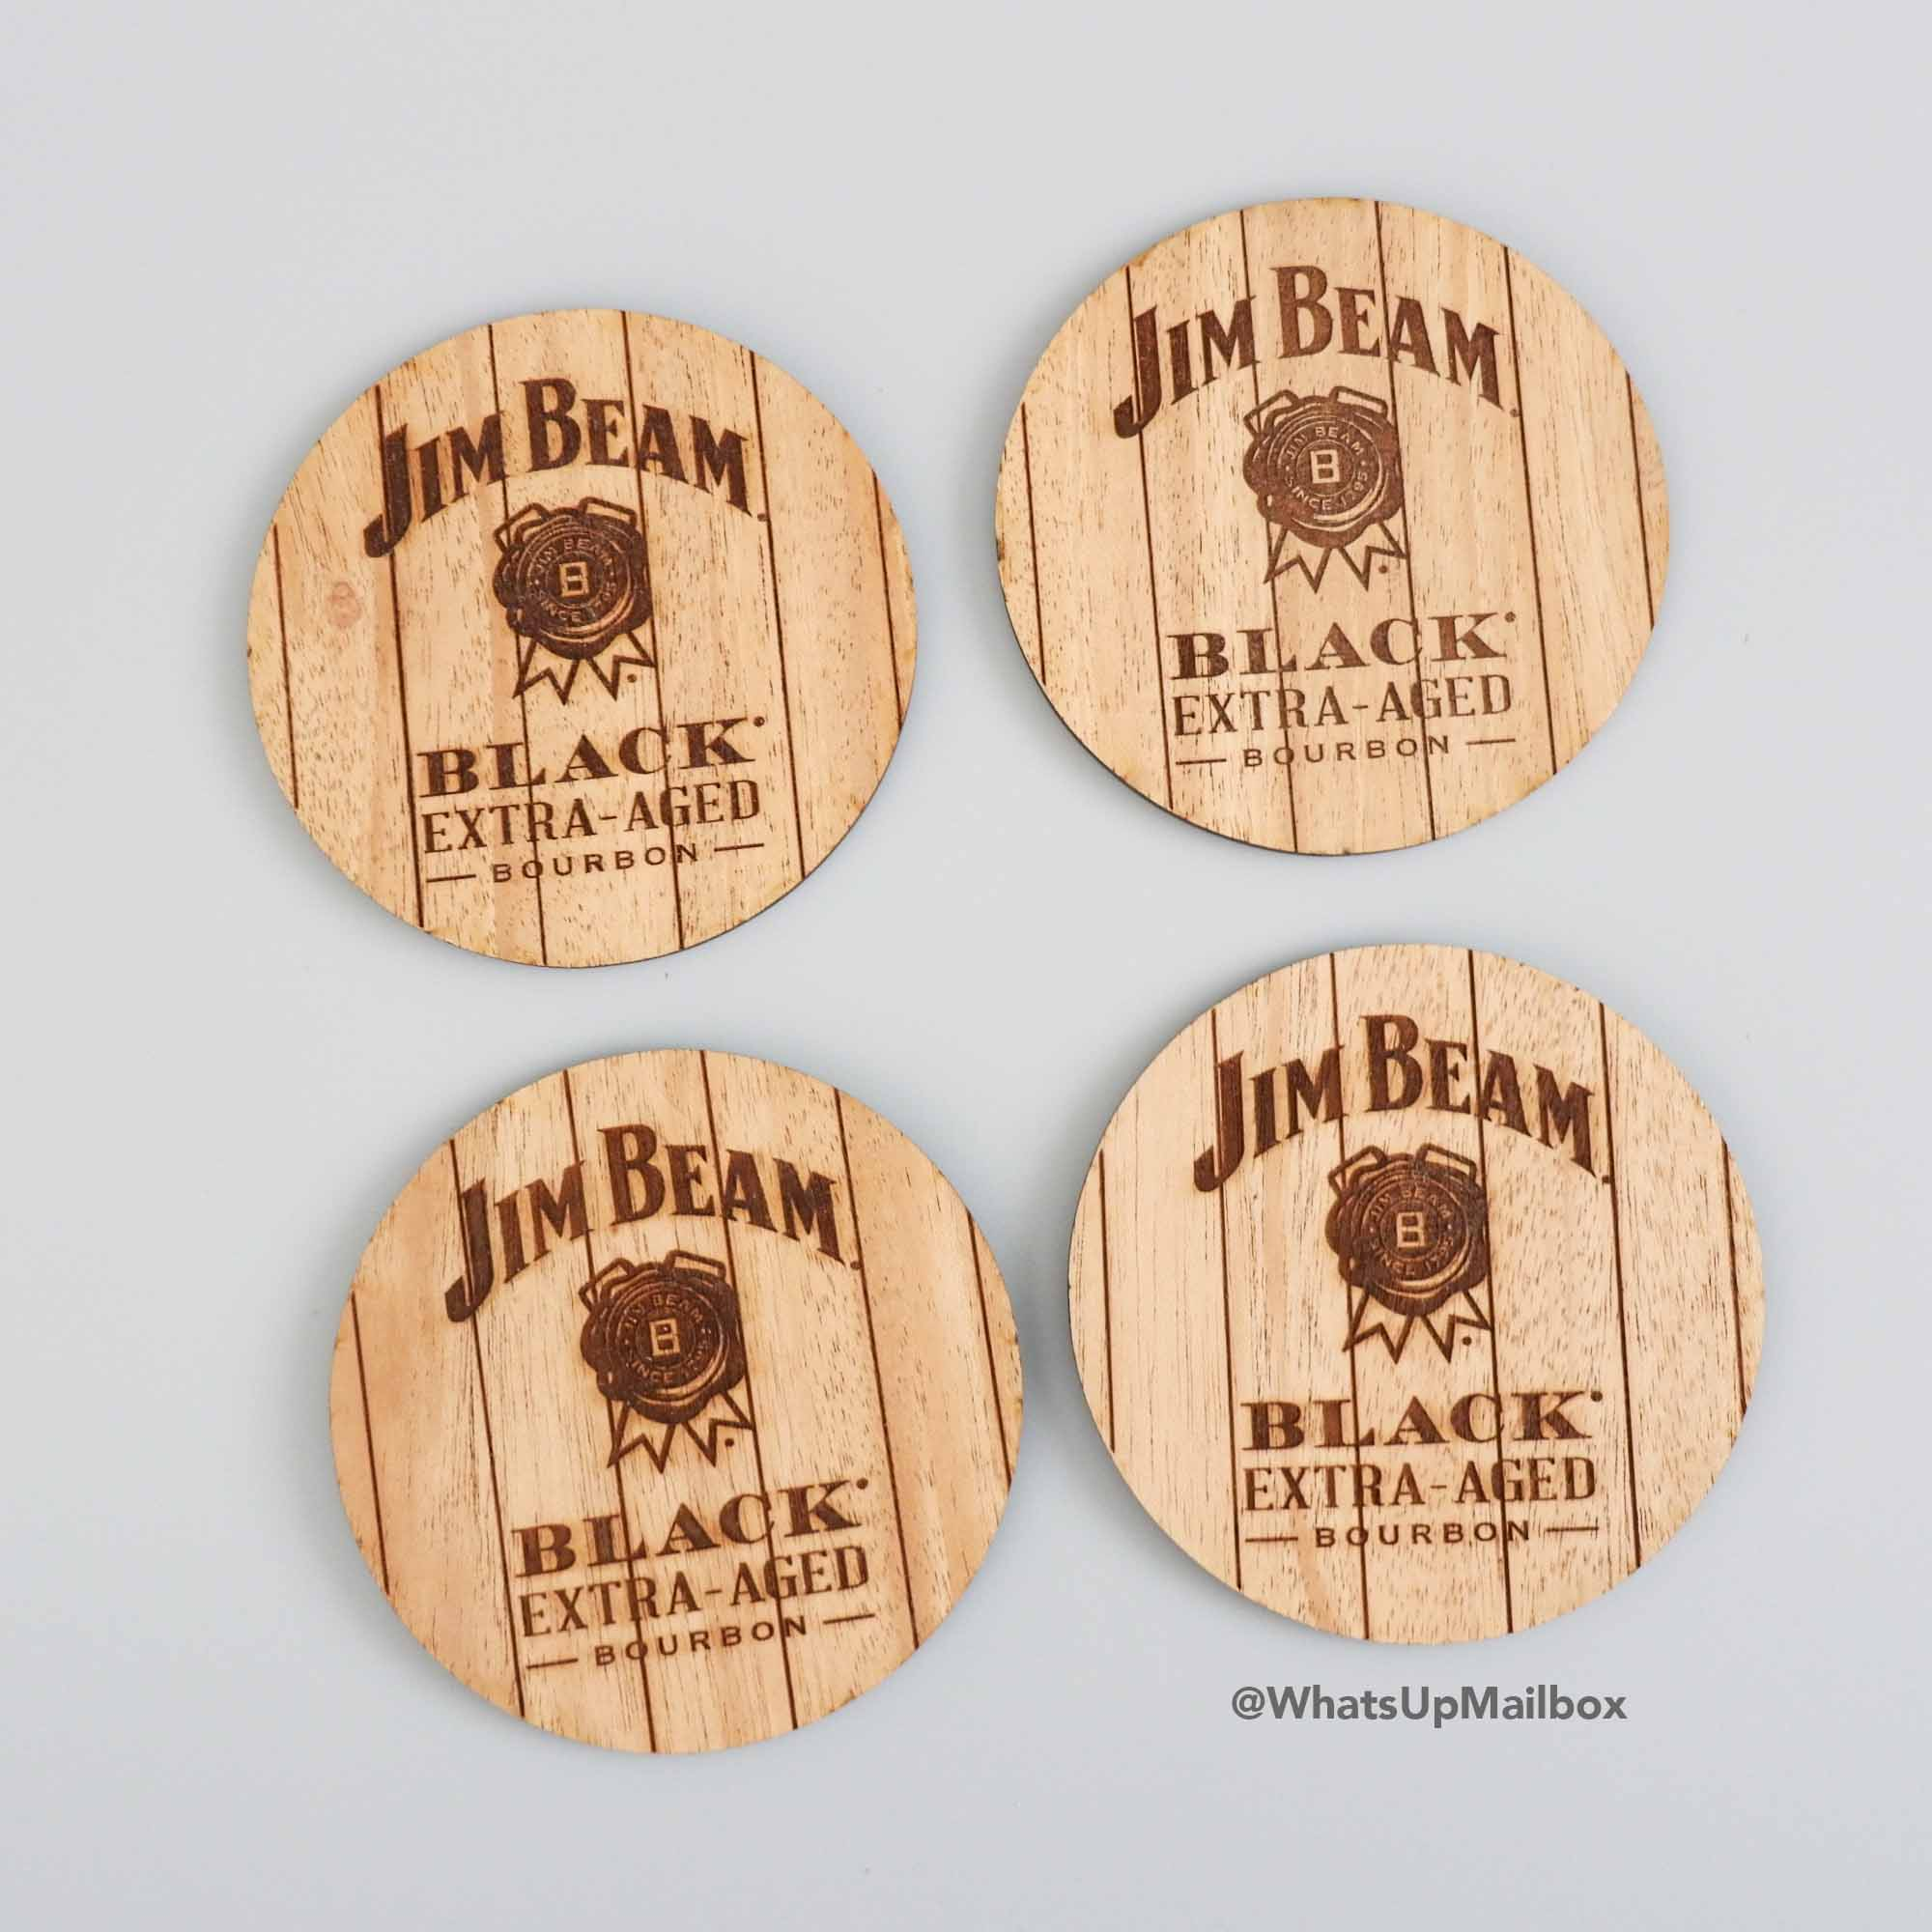 Woodchuck USA Jim Beam Black Coasters